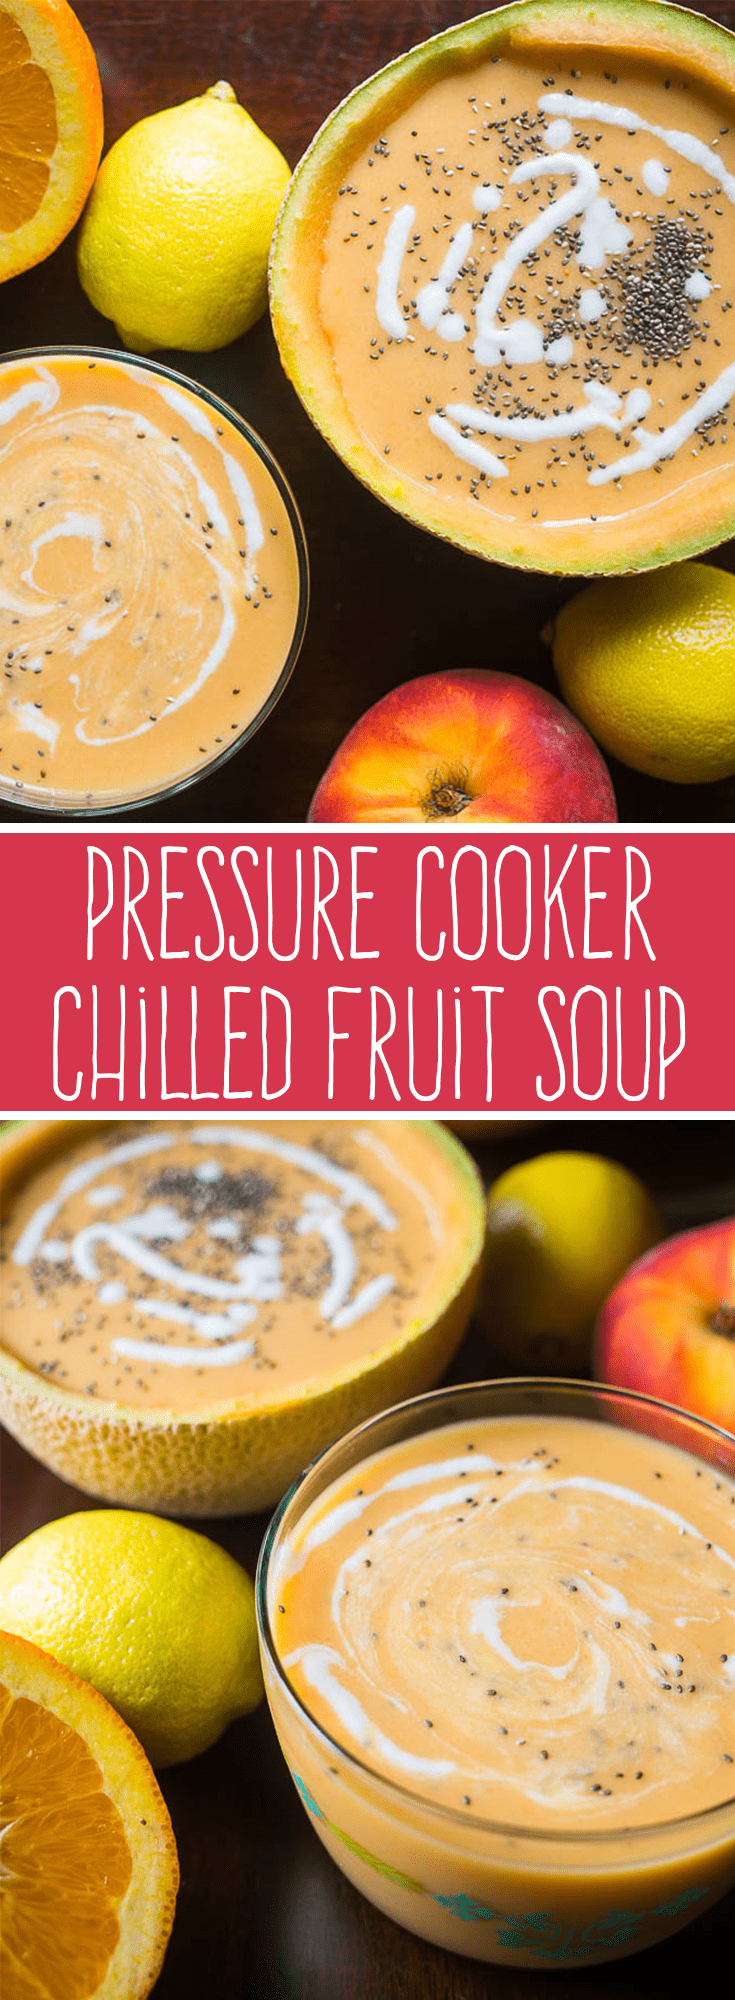 Pressure Cooker Chilled Fruit Soup photo collage